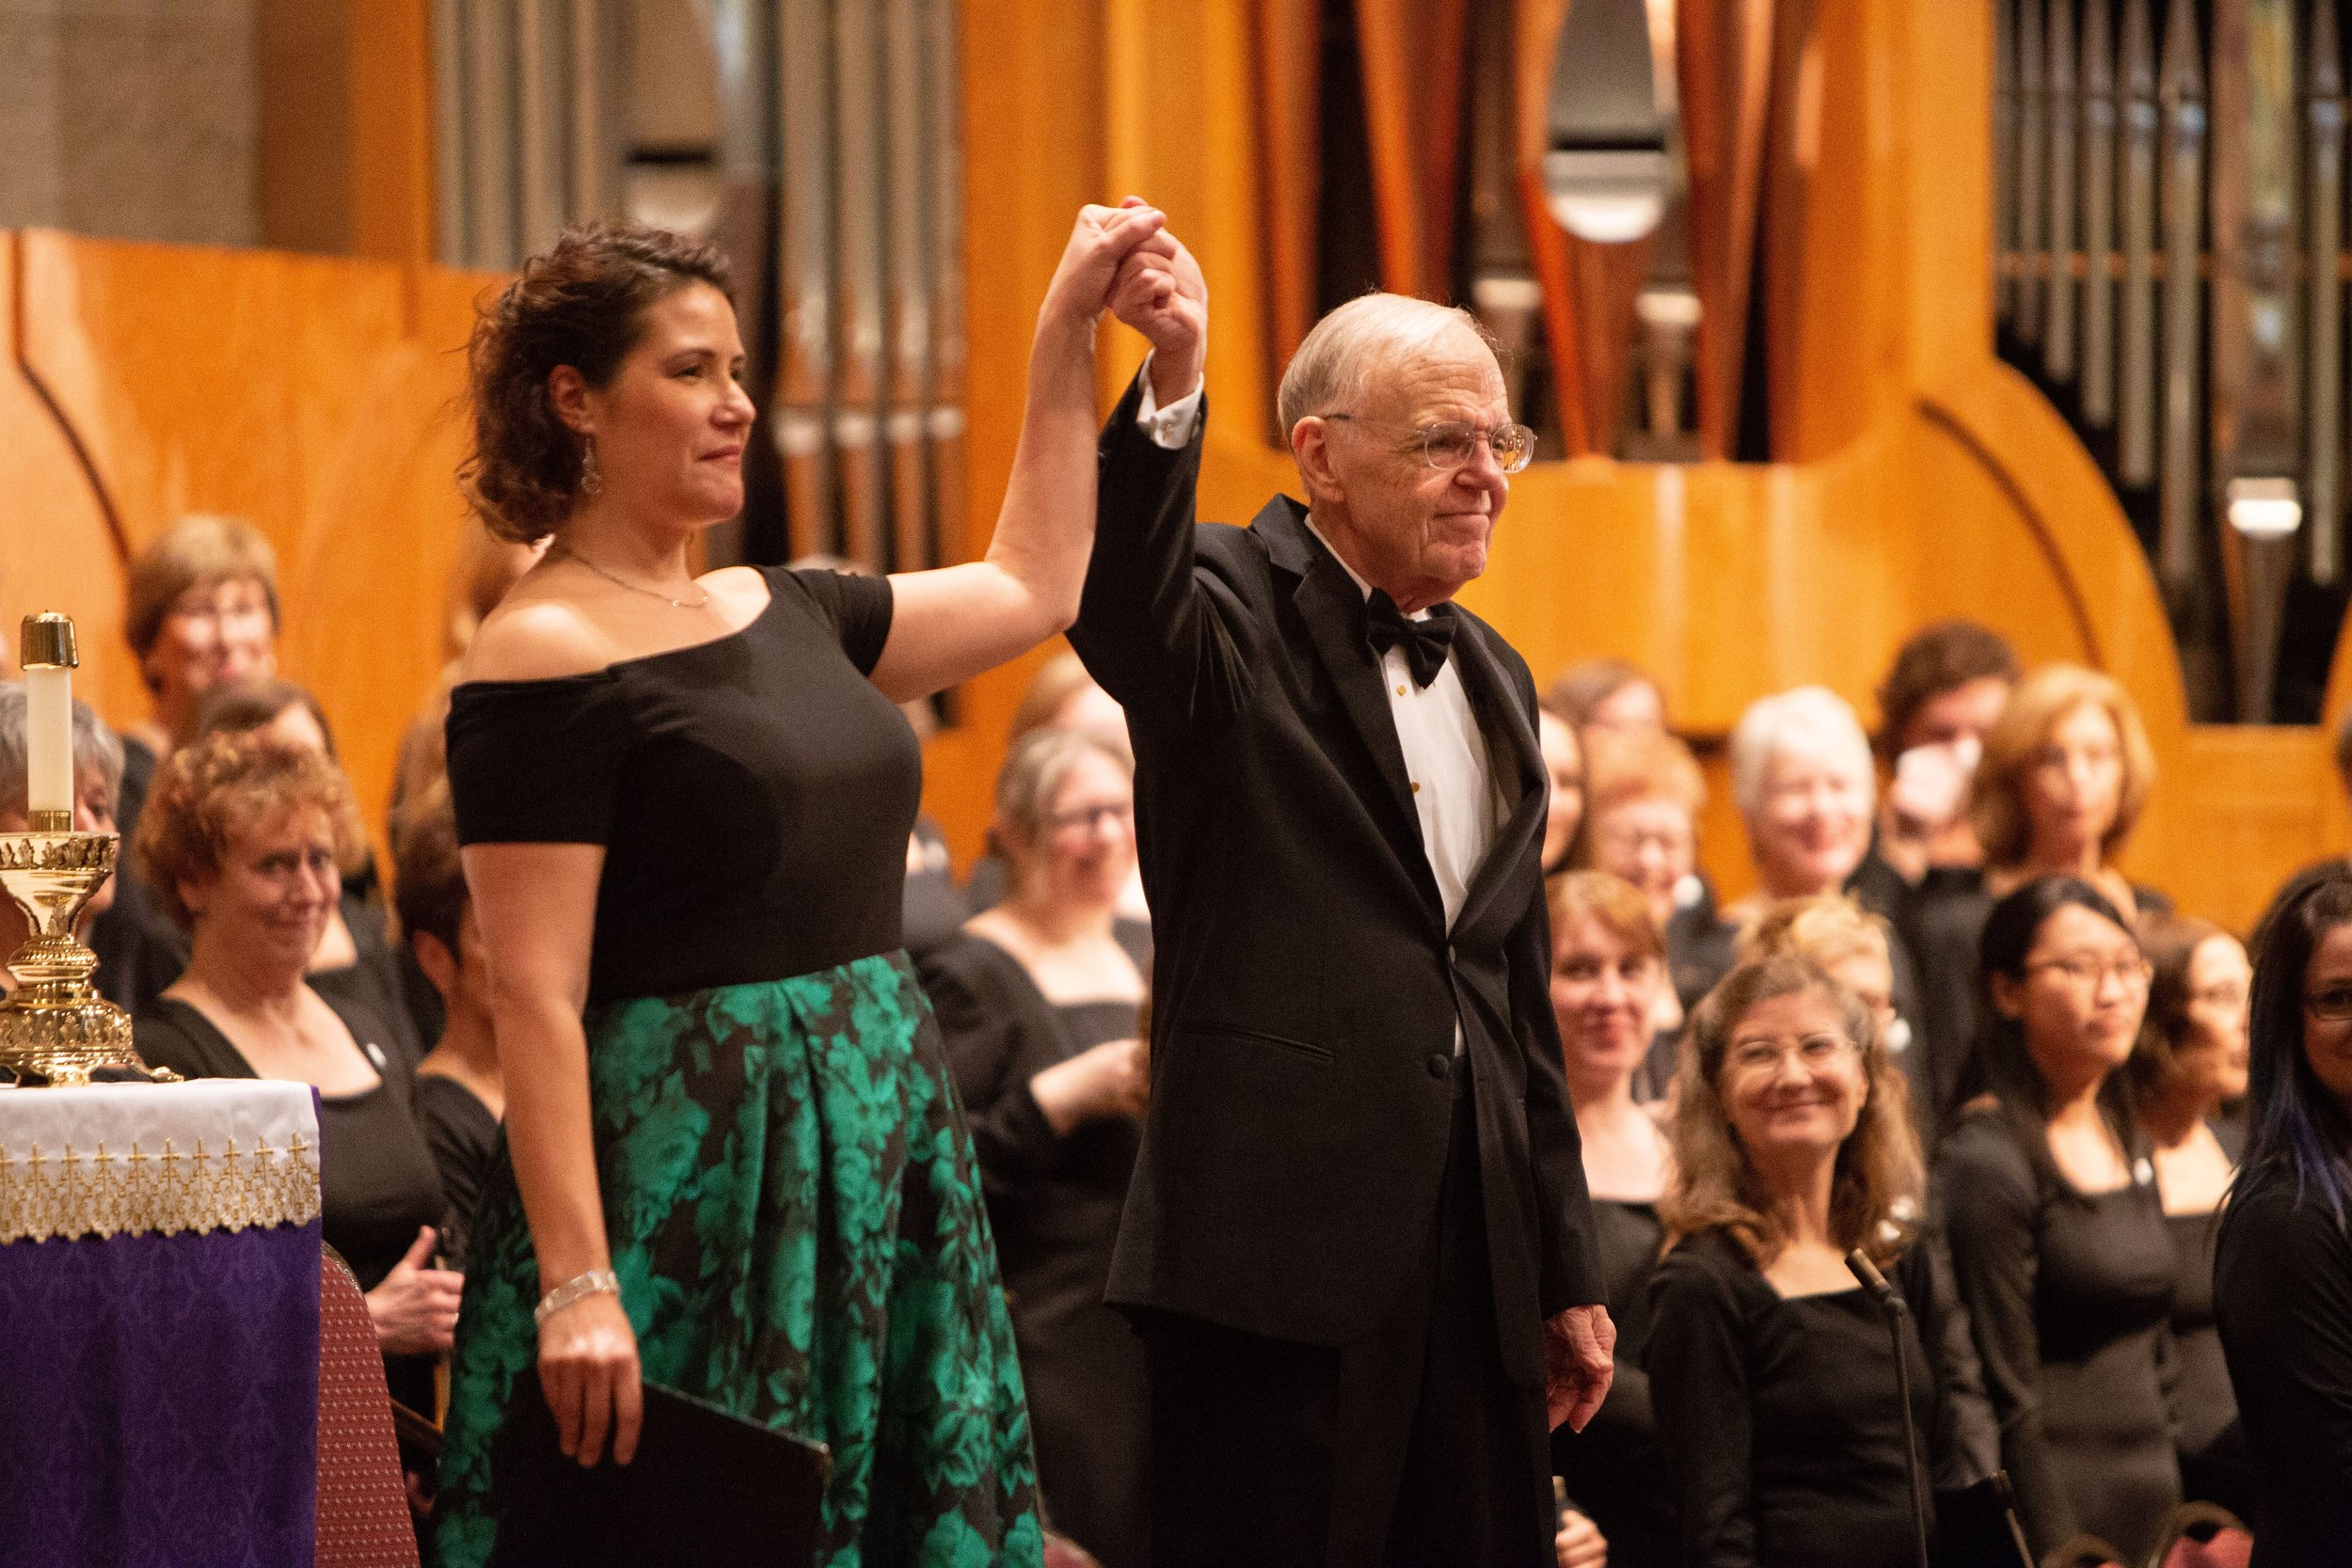 March 2019, soprano soloist Danielle Talamantes & Maestro Shafer